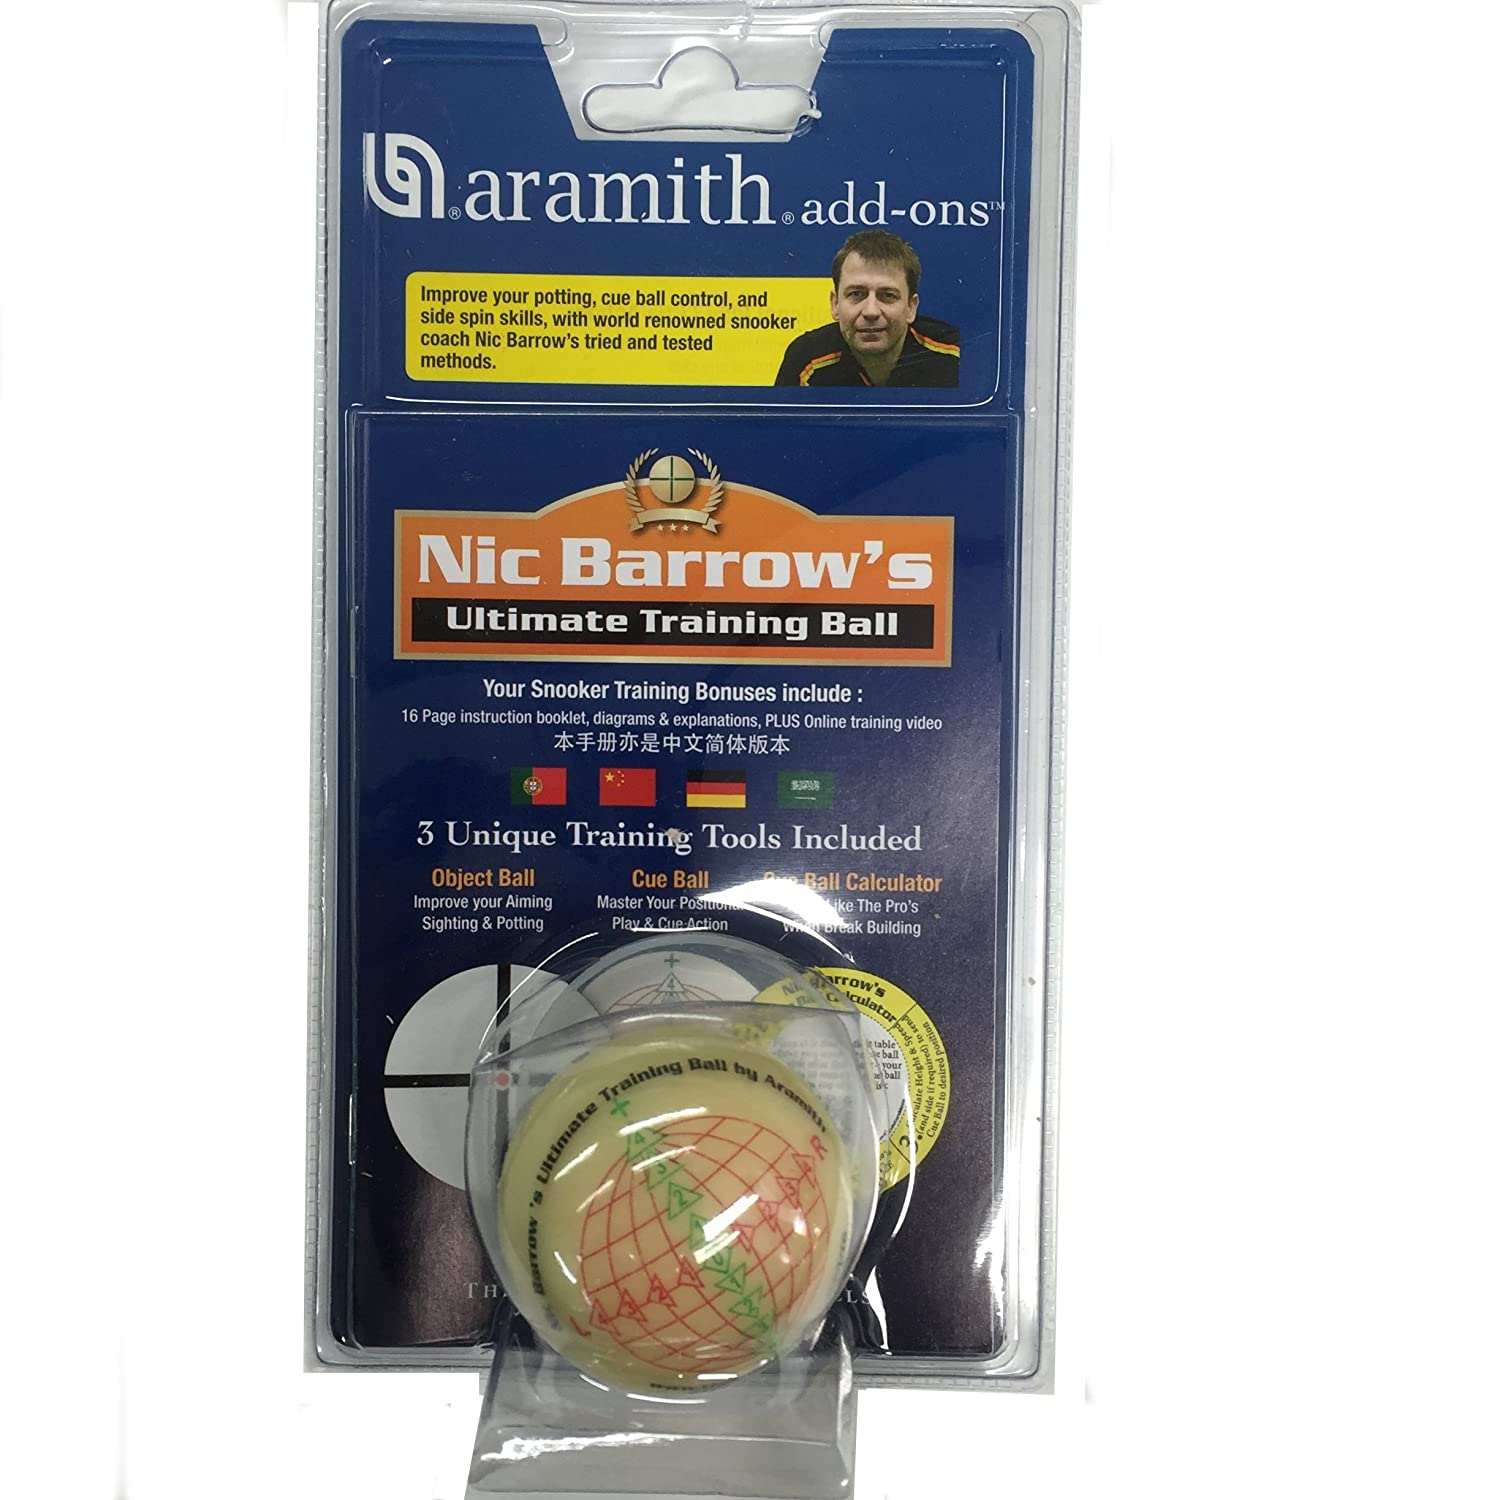 Aramith Nic Barrow's Ultimate Snooker Training Ball